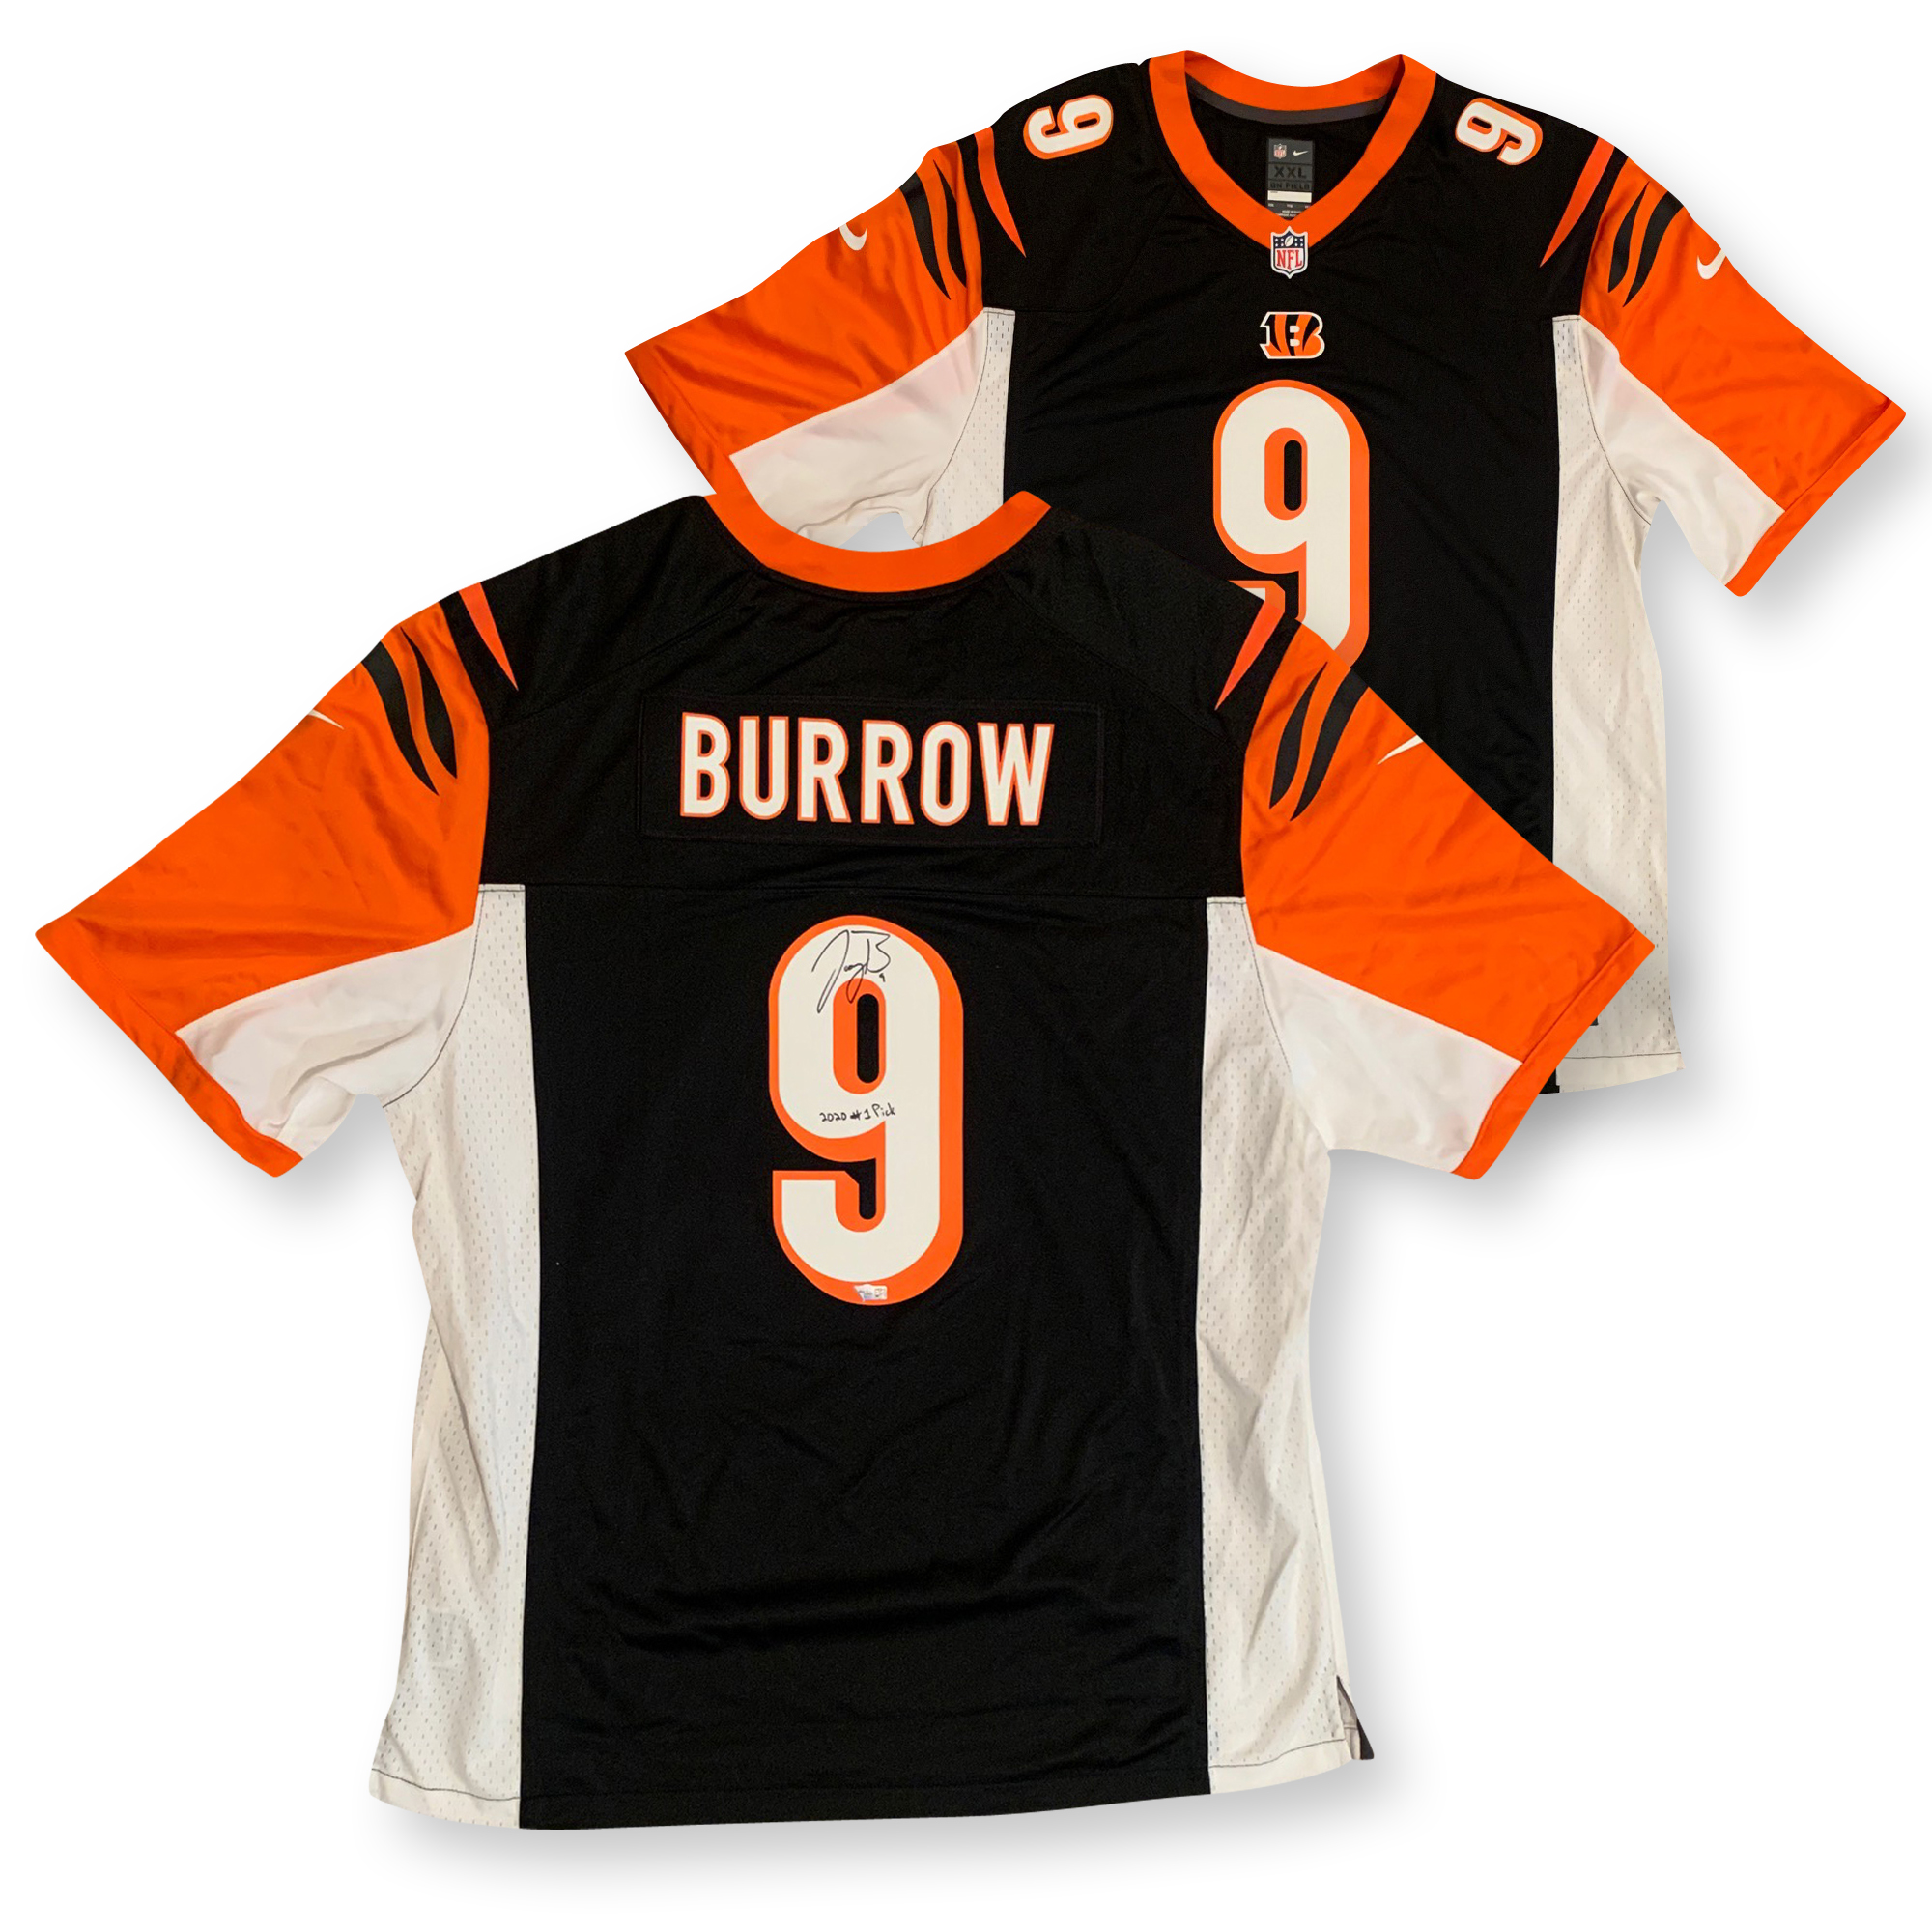 Joe Burrow Autographed Cincinnati Bengals Signed Black 2020 1ST PICK NFL Nike Game Football Jersey Fanatics Authentic COA Bengals 2020 #1 overall pick and former LSU quarterback and 2019 Heisman Trophy winner and National Champion Joe Burrow has autographed this officially licensed Bengals Nike Game jersey, size XXL and written 2020 1st PICK. Name and numbers screened on. Autograph is authenticated by Fanatics Authentic who has Burrow as their exclusive memorabilia client. Item comes with their unique hologram # on the item that is verified on their website. 100% authentic.